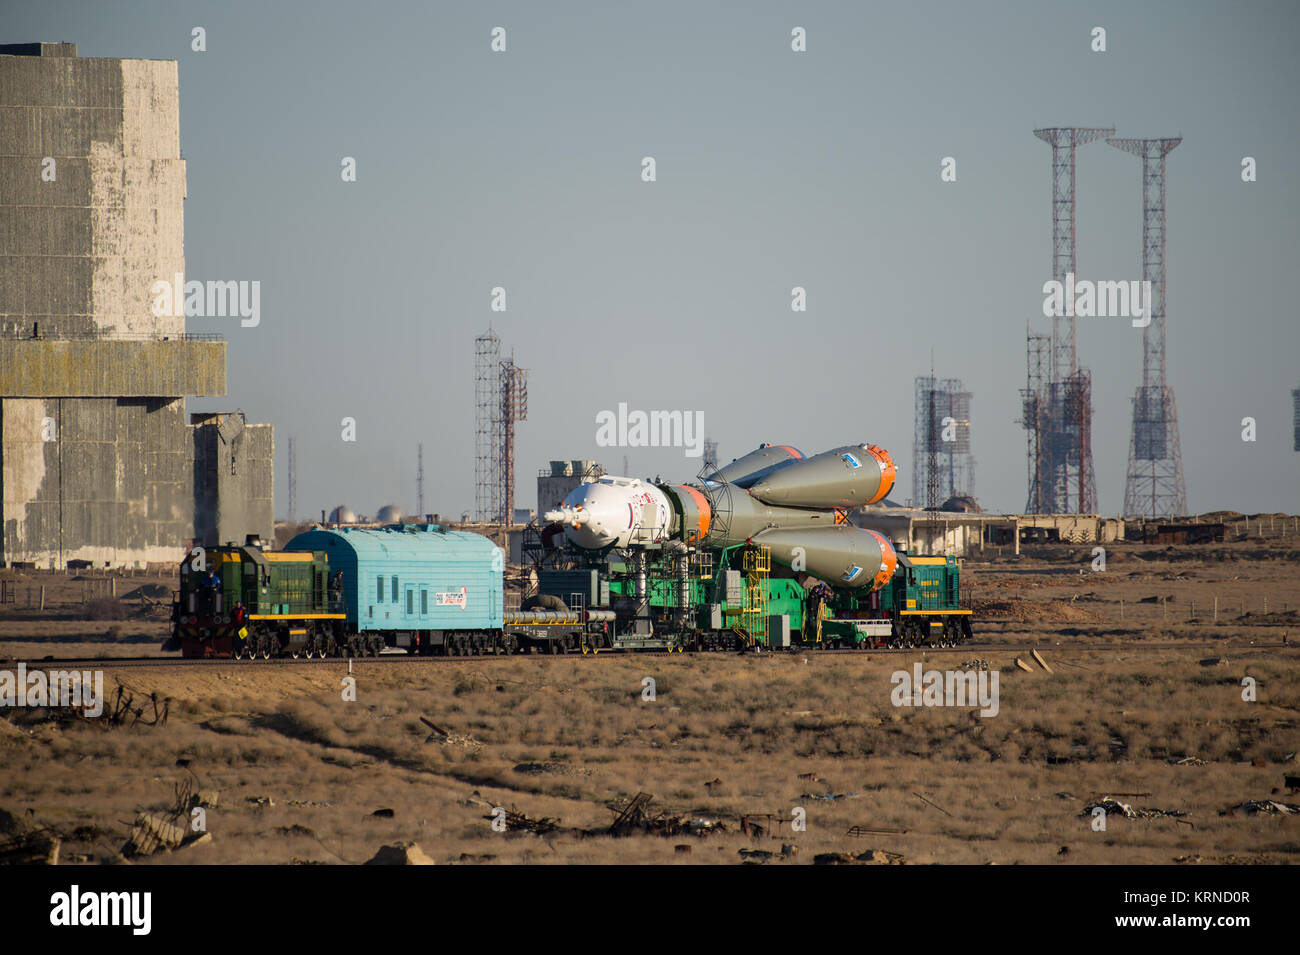 The Soyuz MS-04 spacecraft is rolled out to the launch pad by train on Monday, April 17, 2017 at the Baikonur Cosmodrome - Stock Image